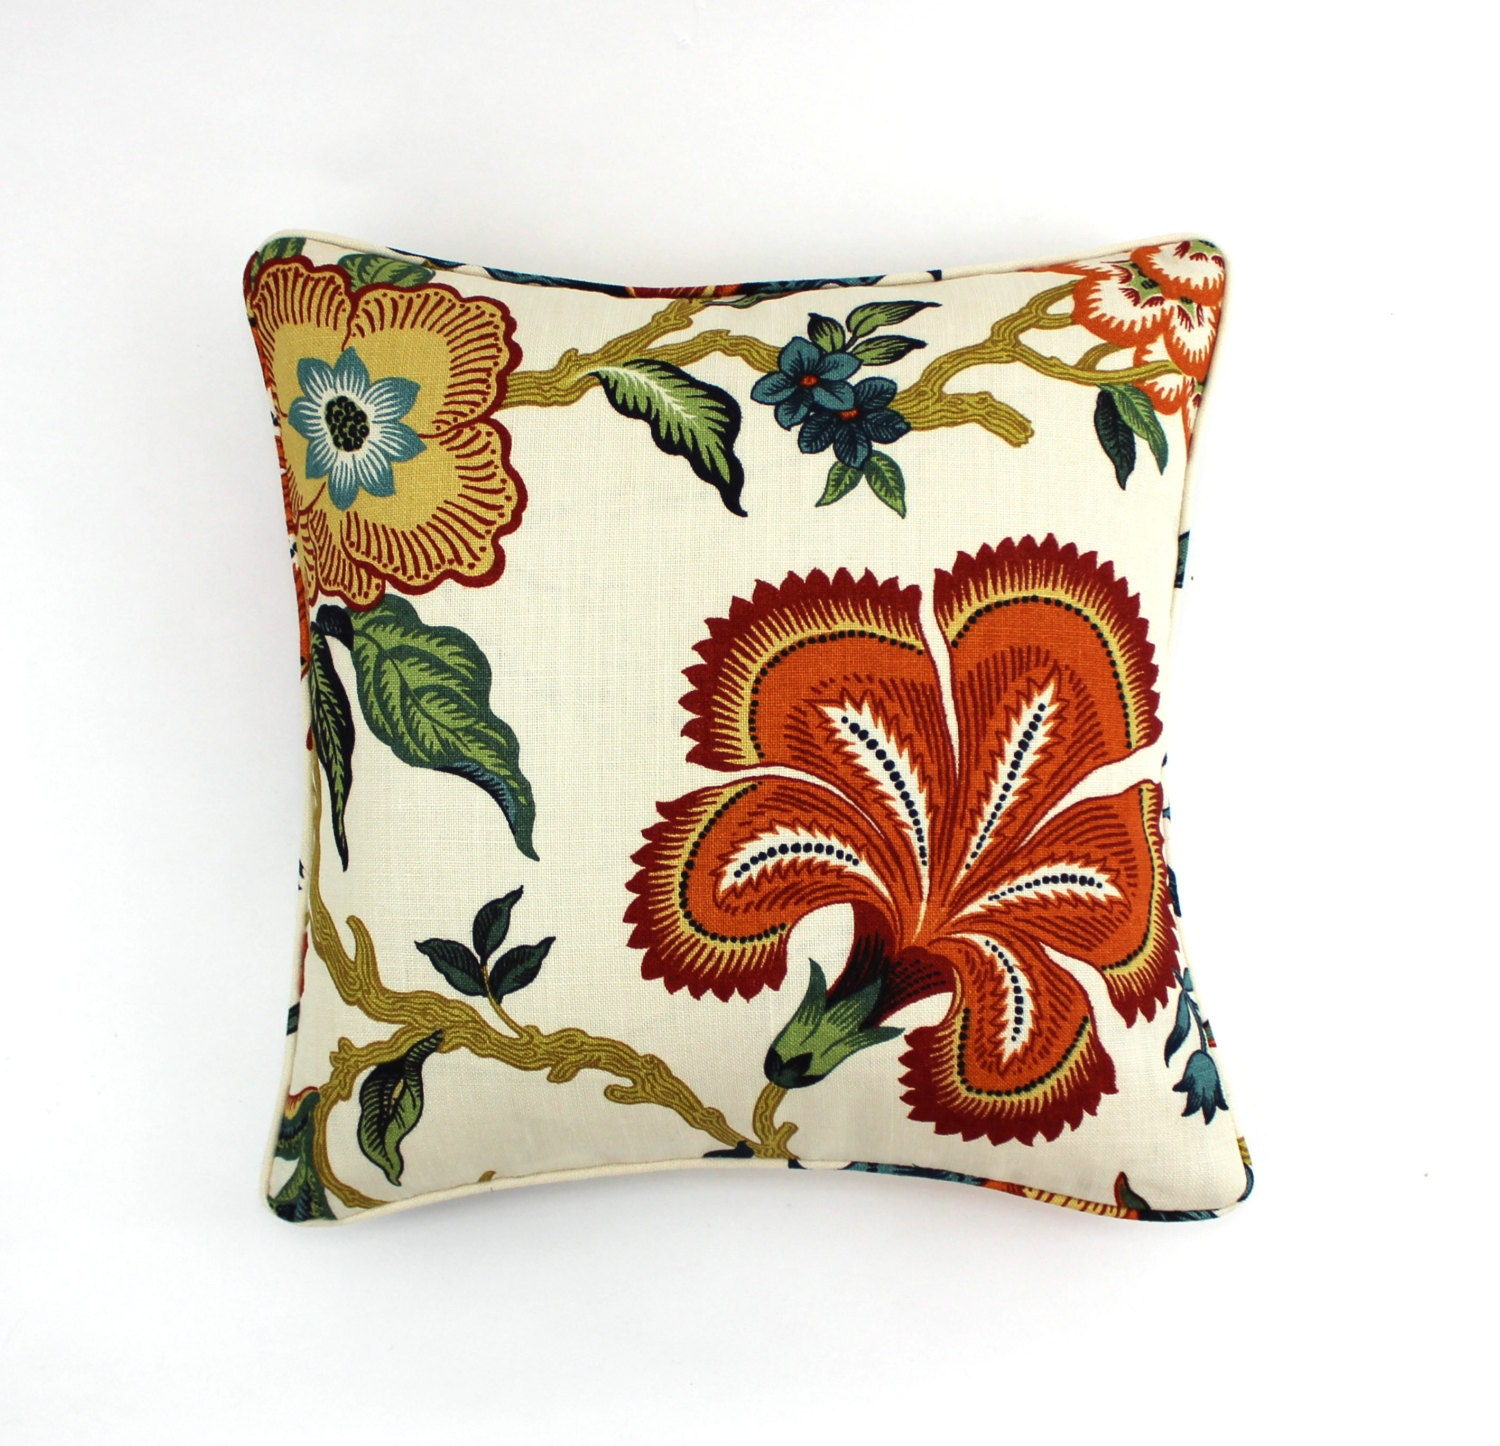 Schumacher Celerie Kemble Hothouse Flowers Pillows with self